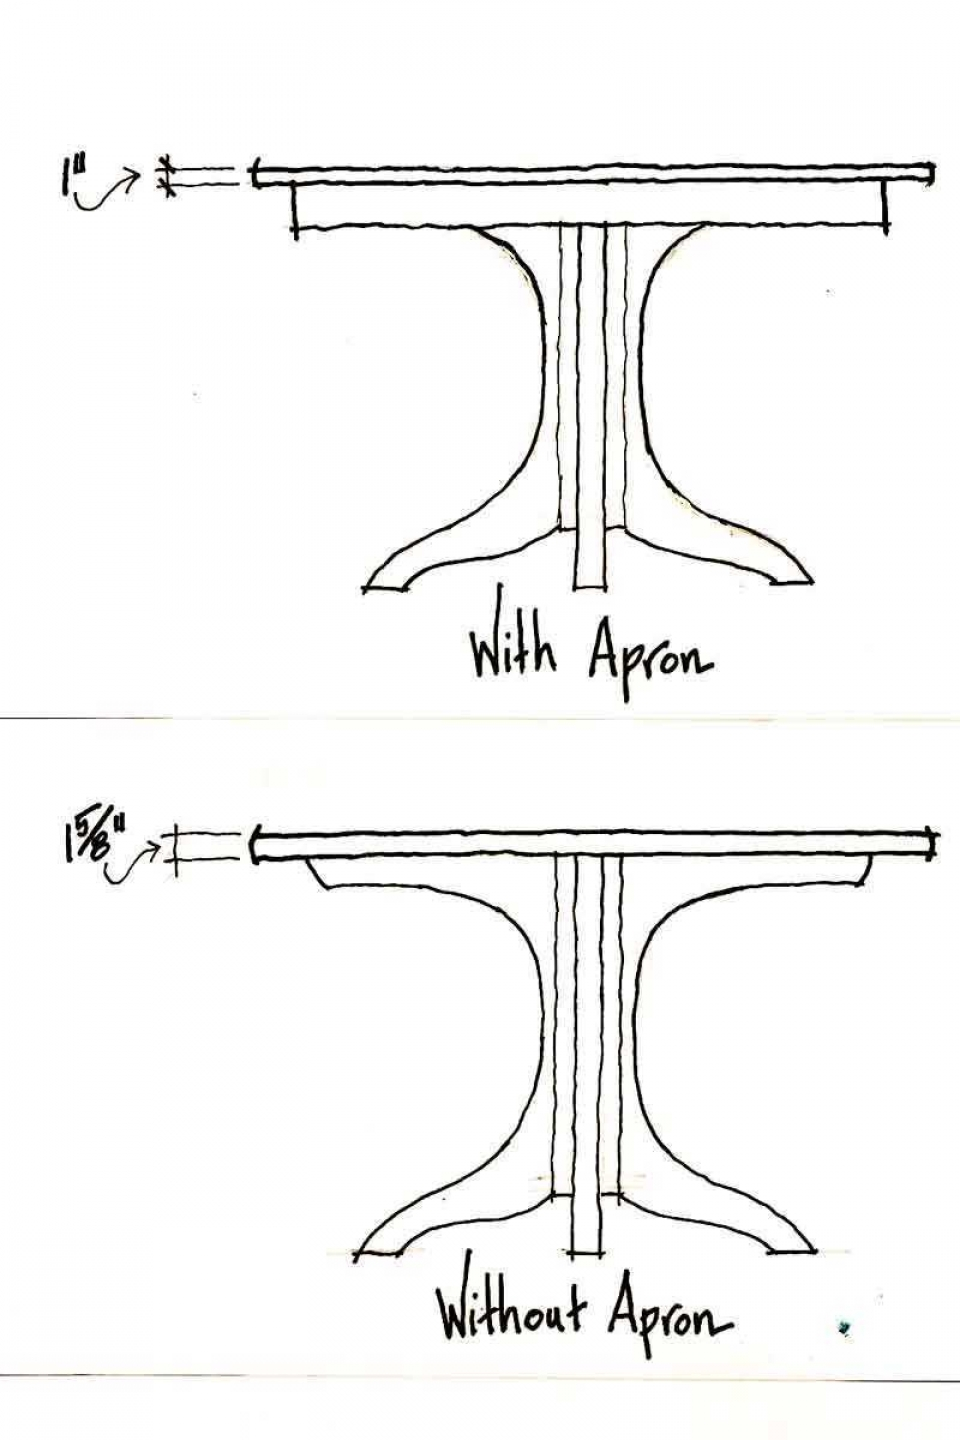 Johnson pedestal table dimension drawings